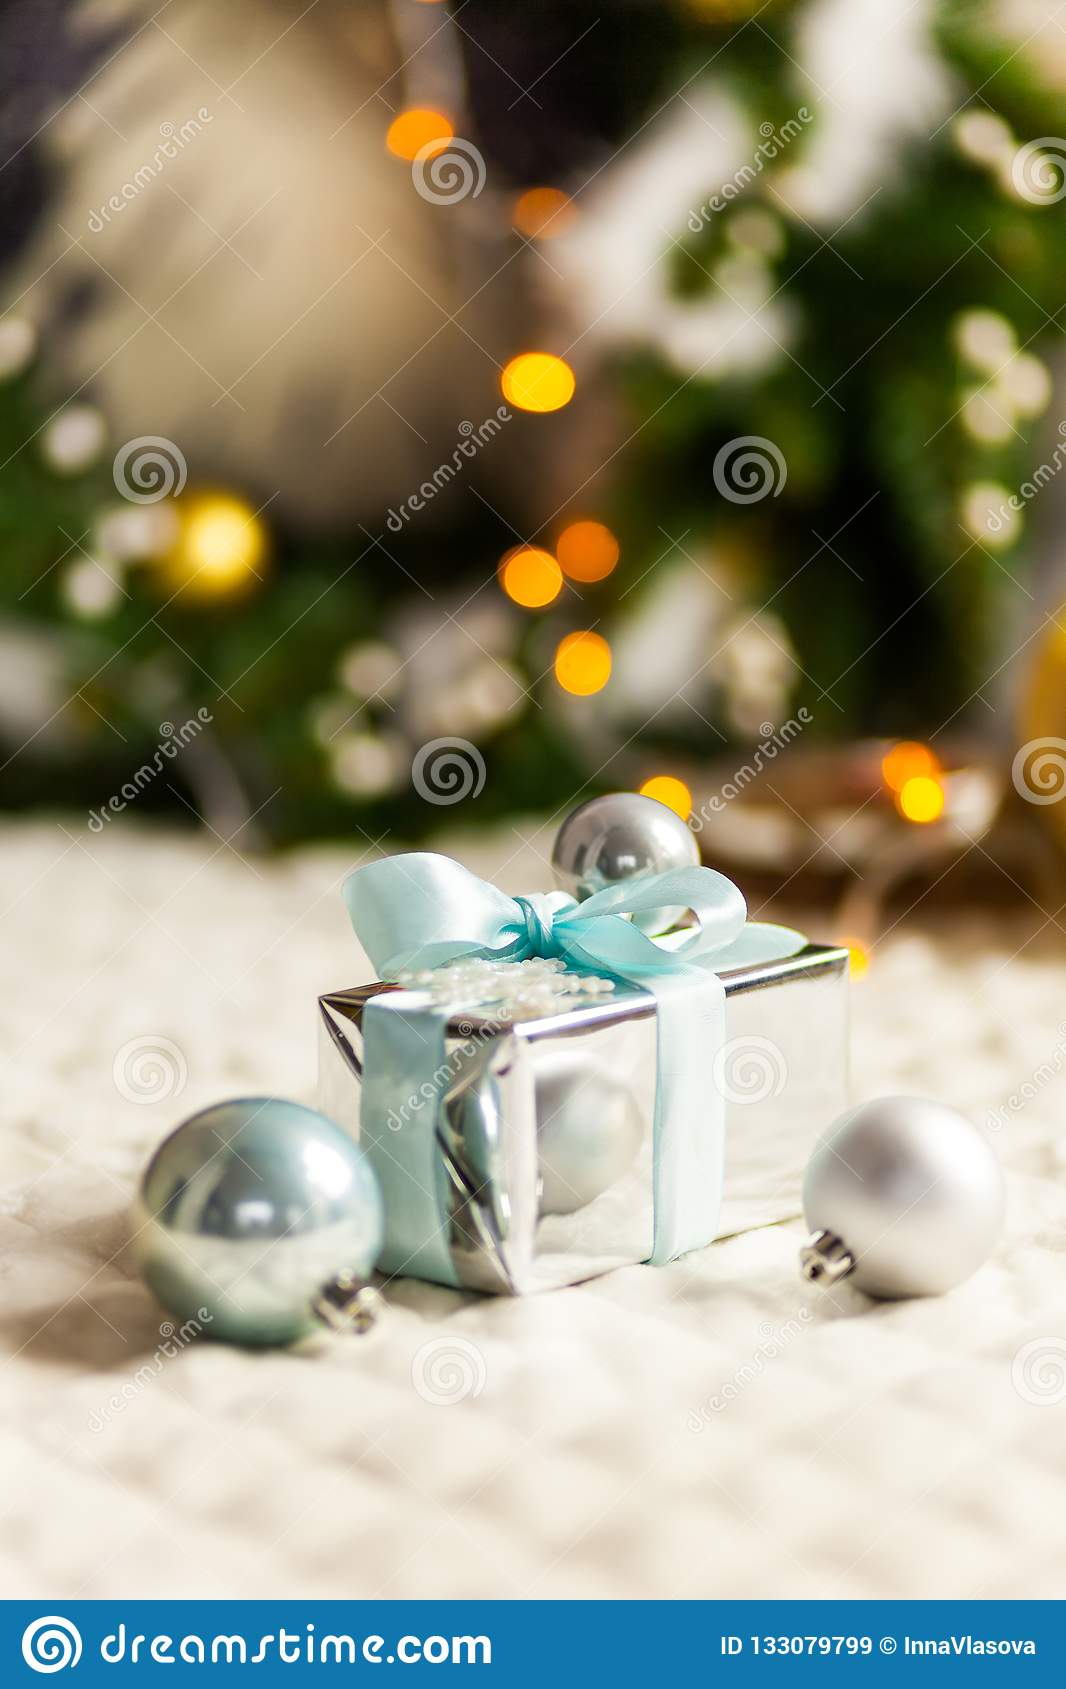 The Silver and blue Christmas balls and gifts on festive lighting background